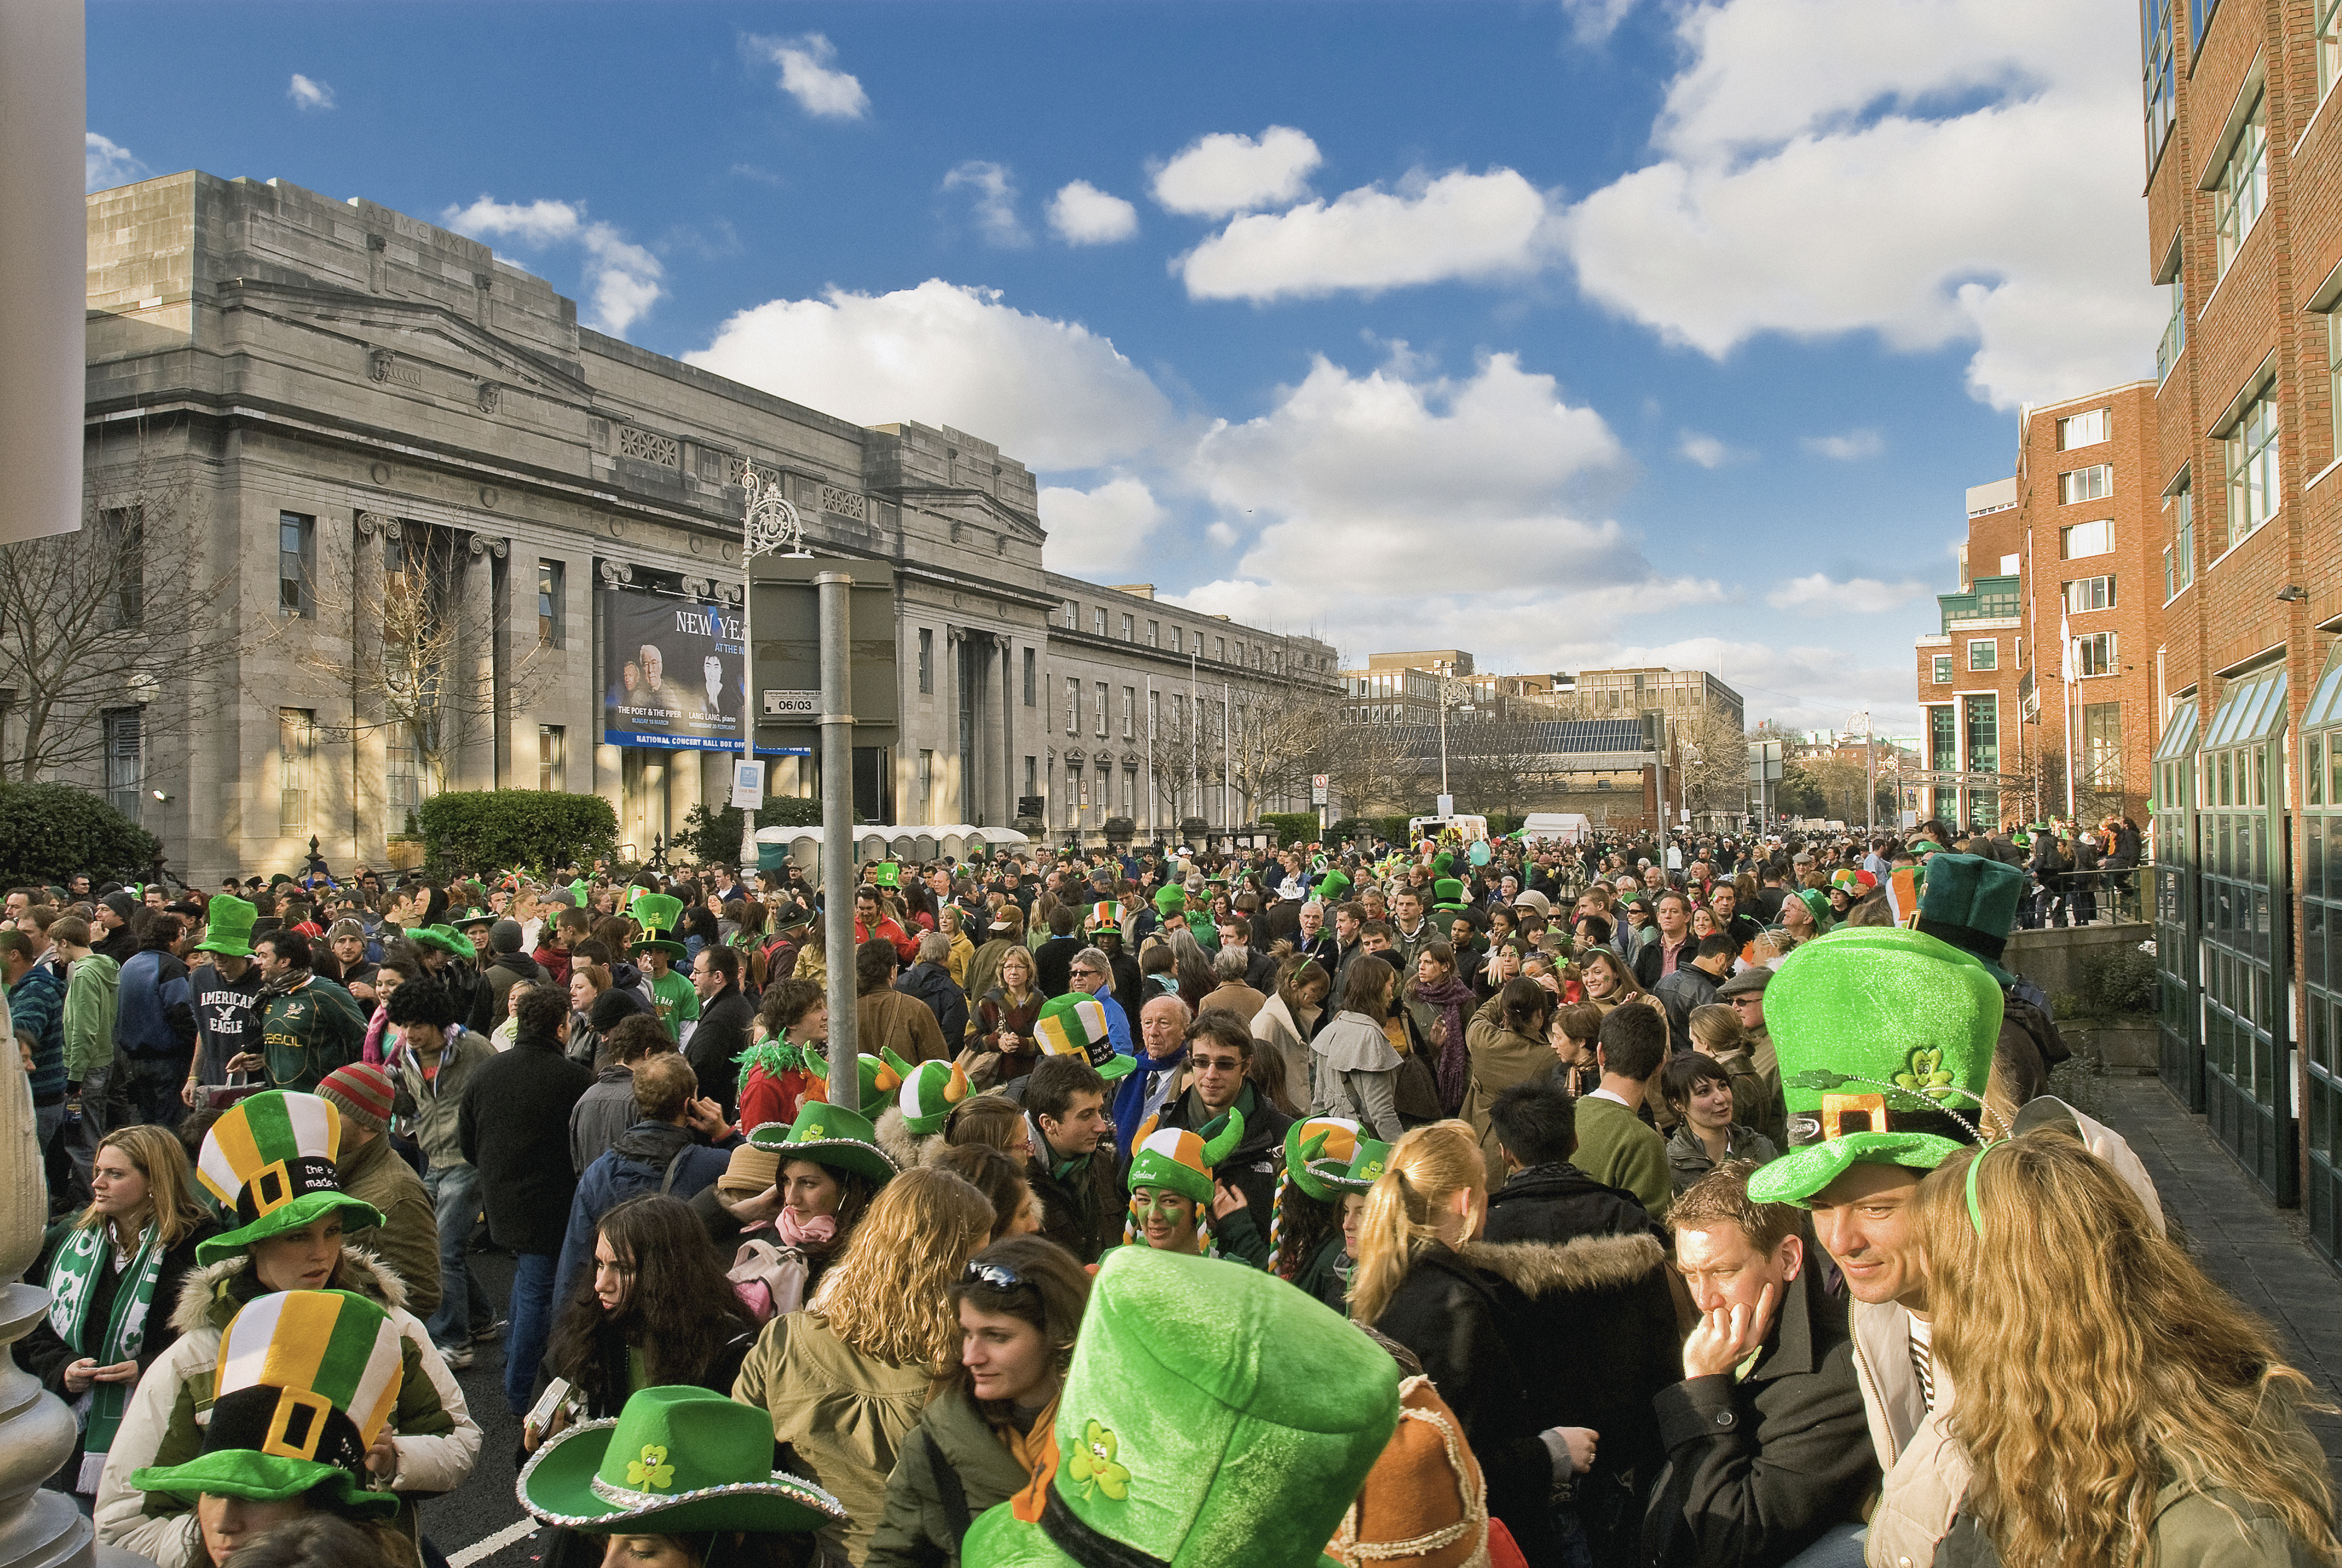 The St. Patrick's Day Parade in Dublin, Ireland.